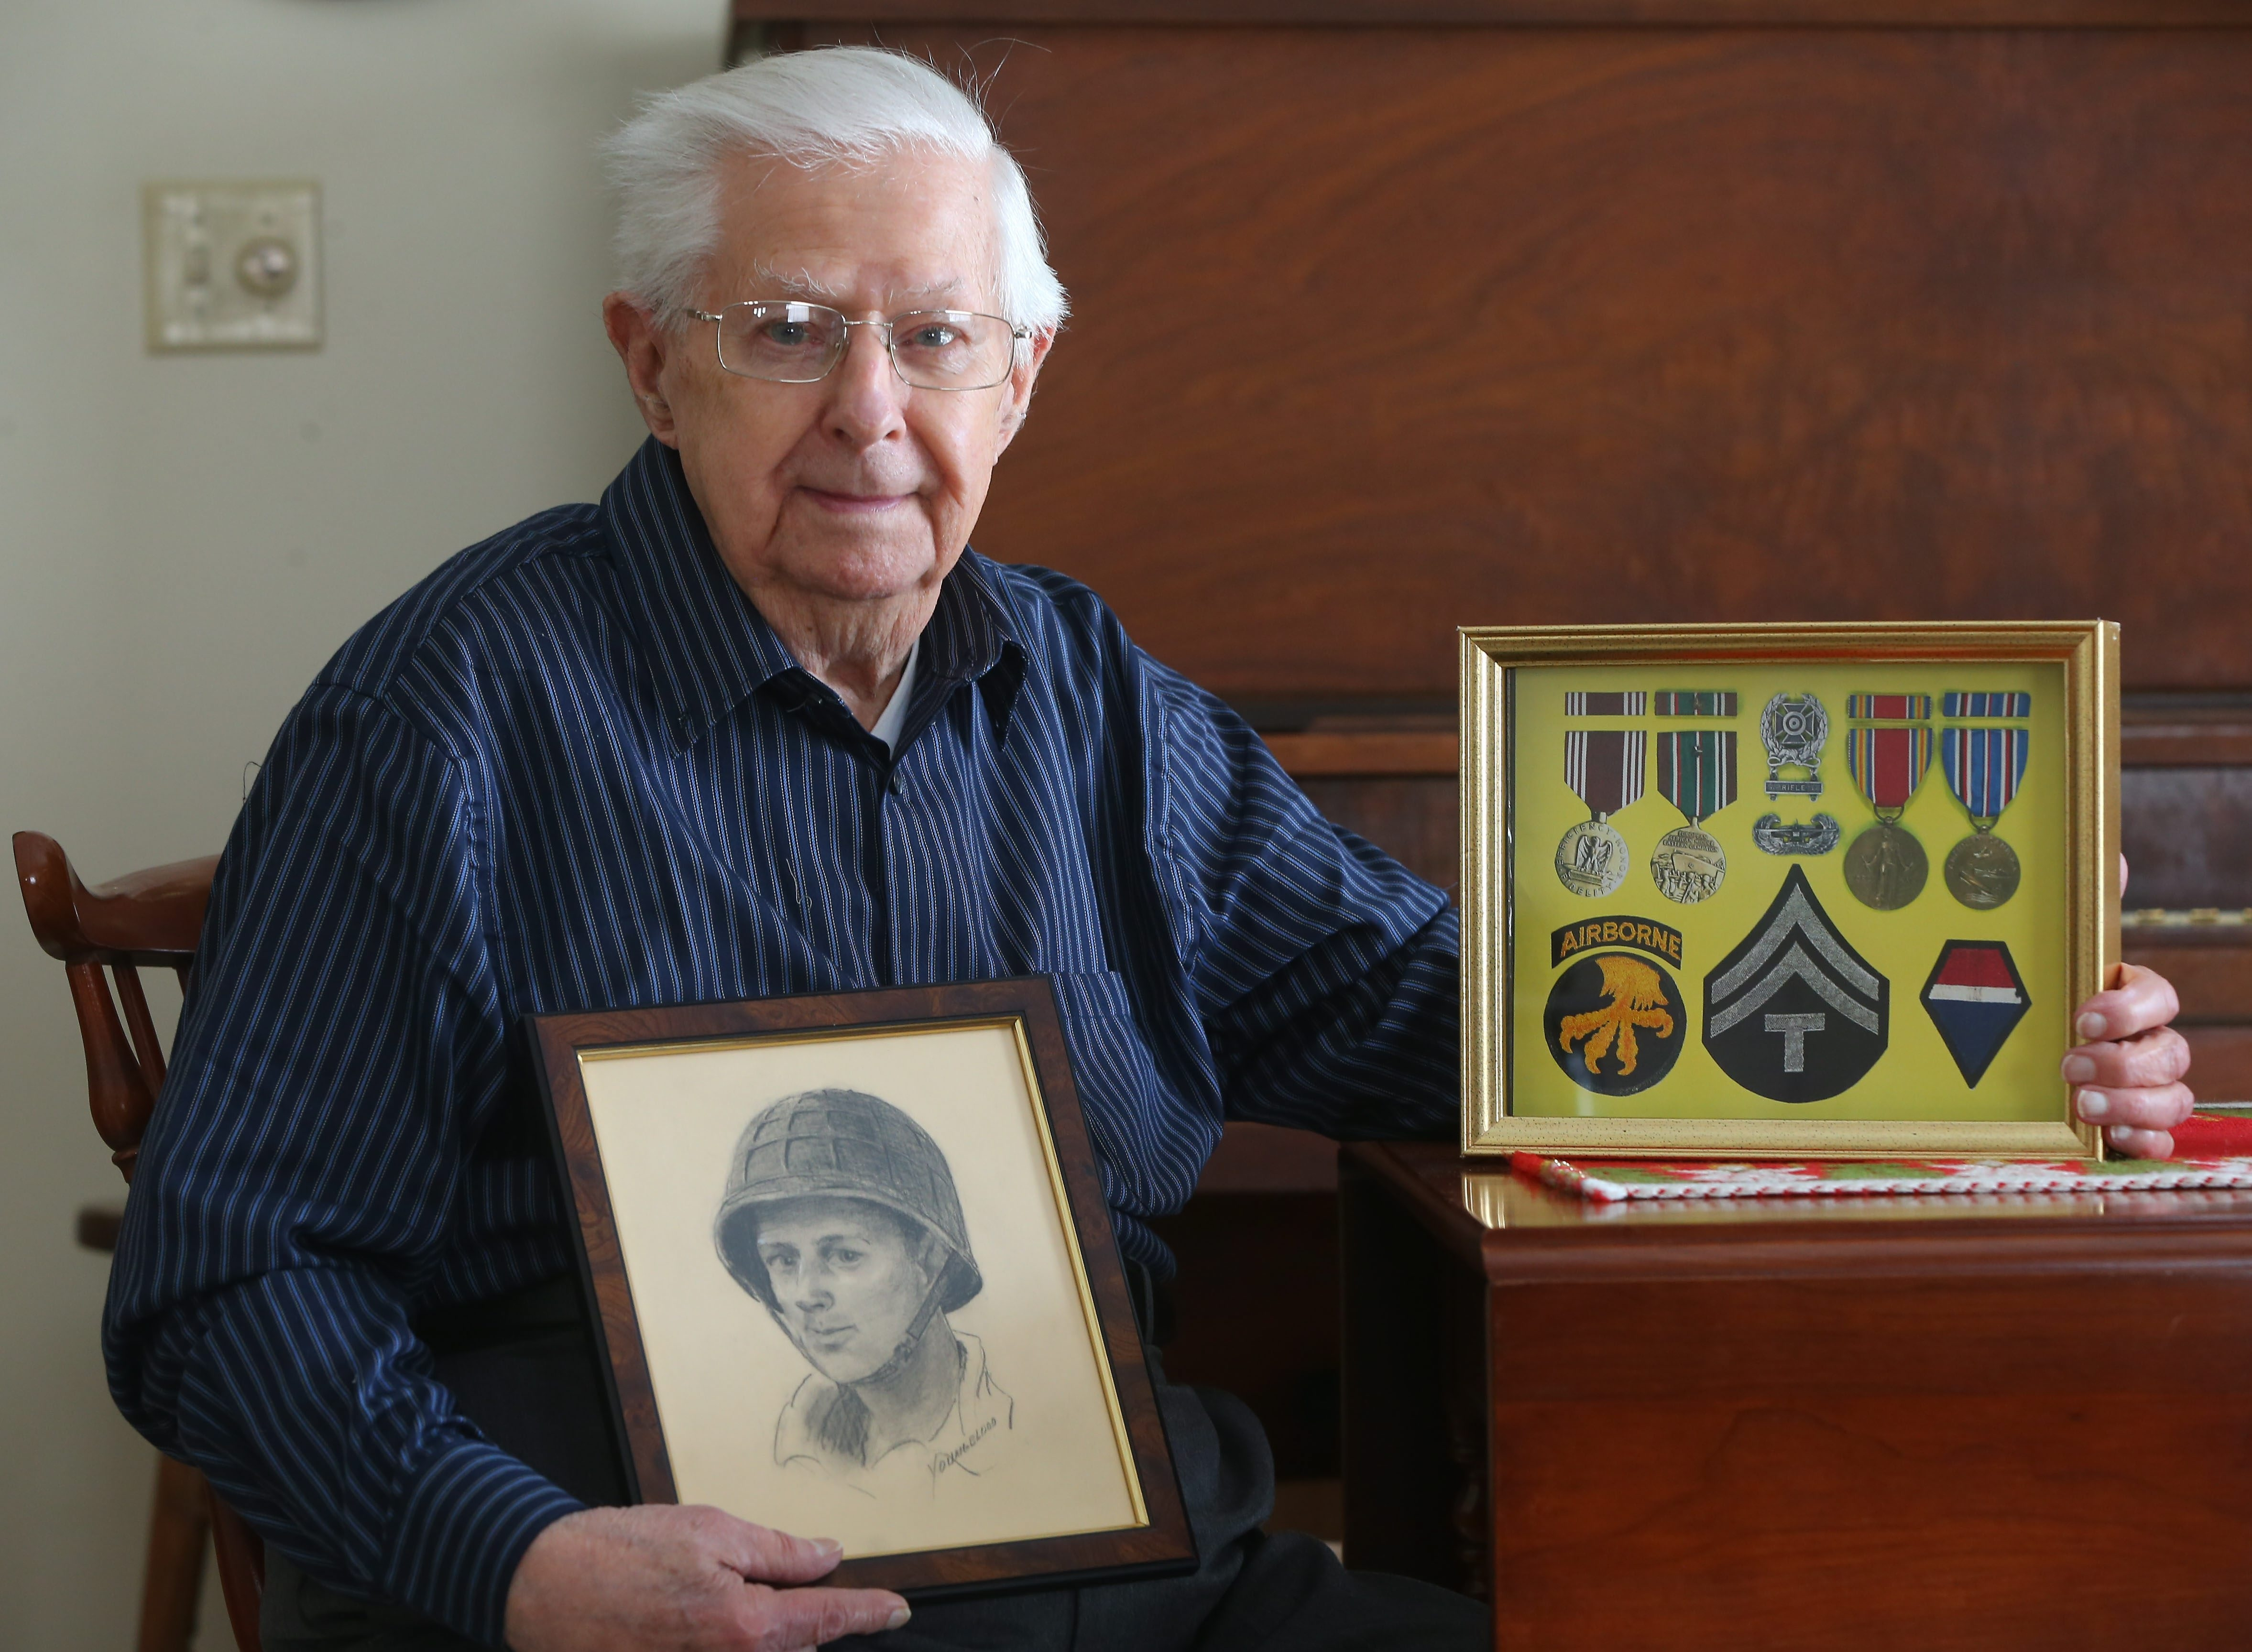 Dick Matthies, with medals and insignia, along with a sketch of himself, recalls how his unit had inflatable tanks, artillery, vehicles and even fake troops to fool the enemy.